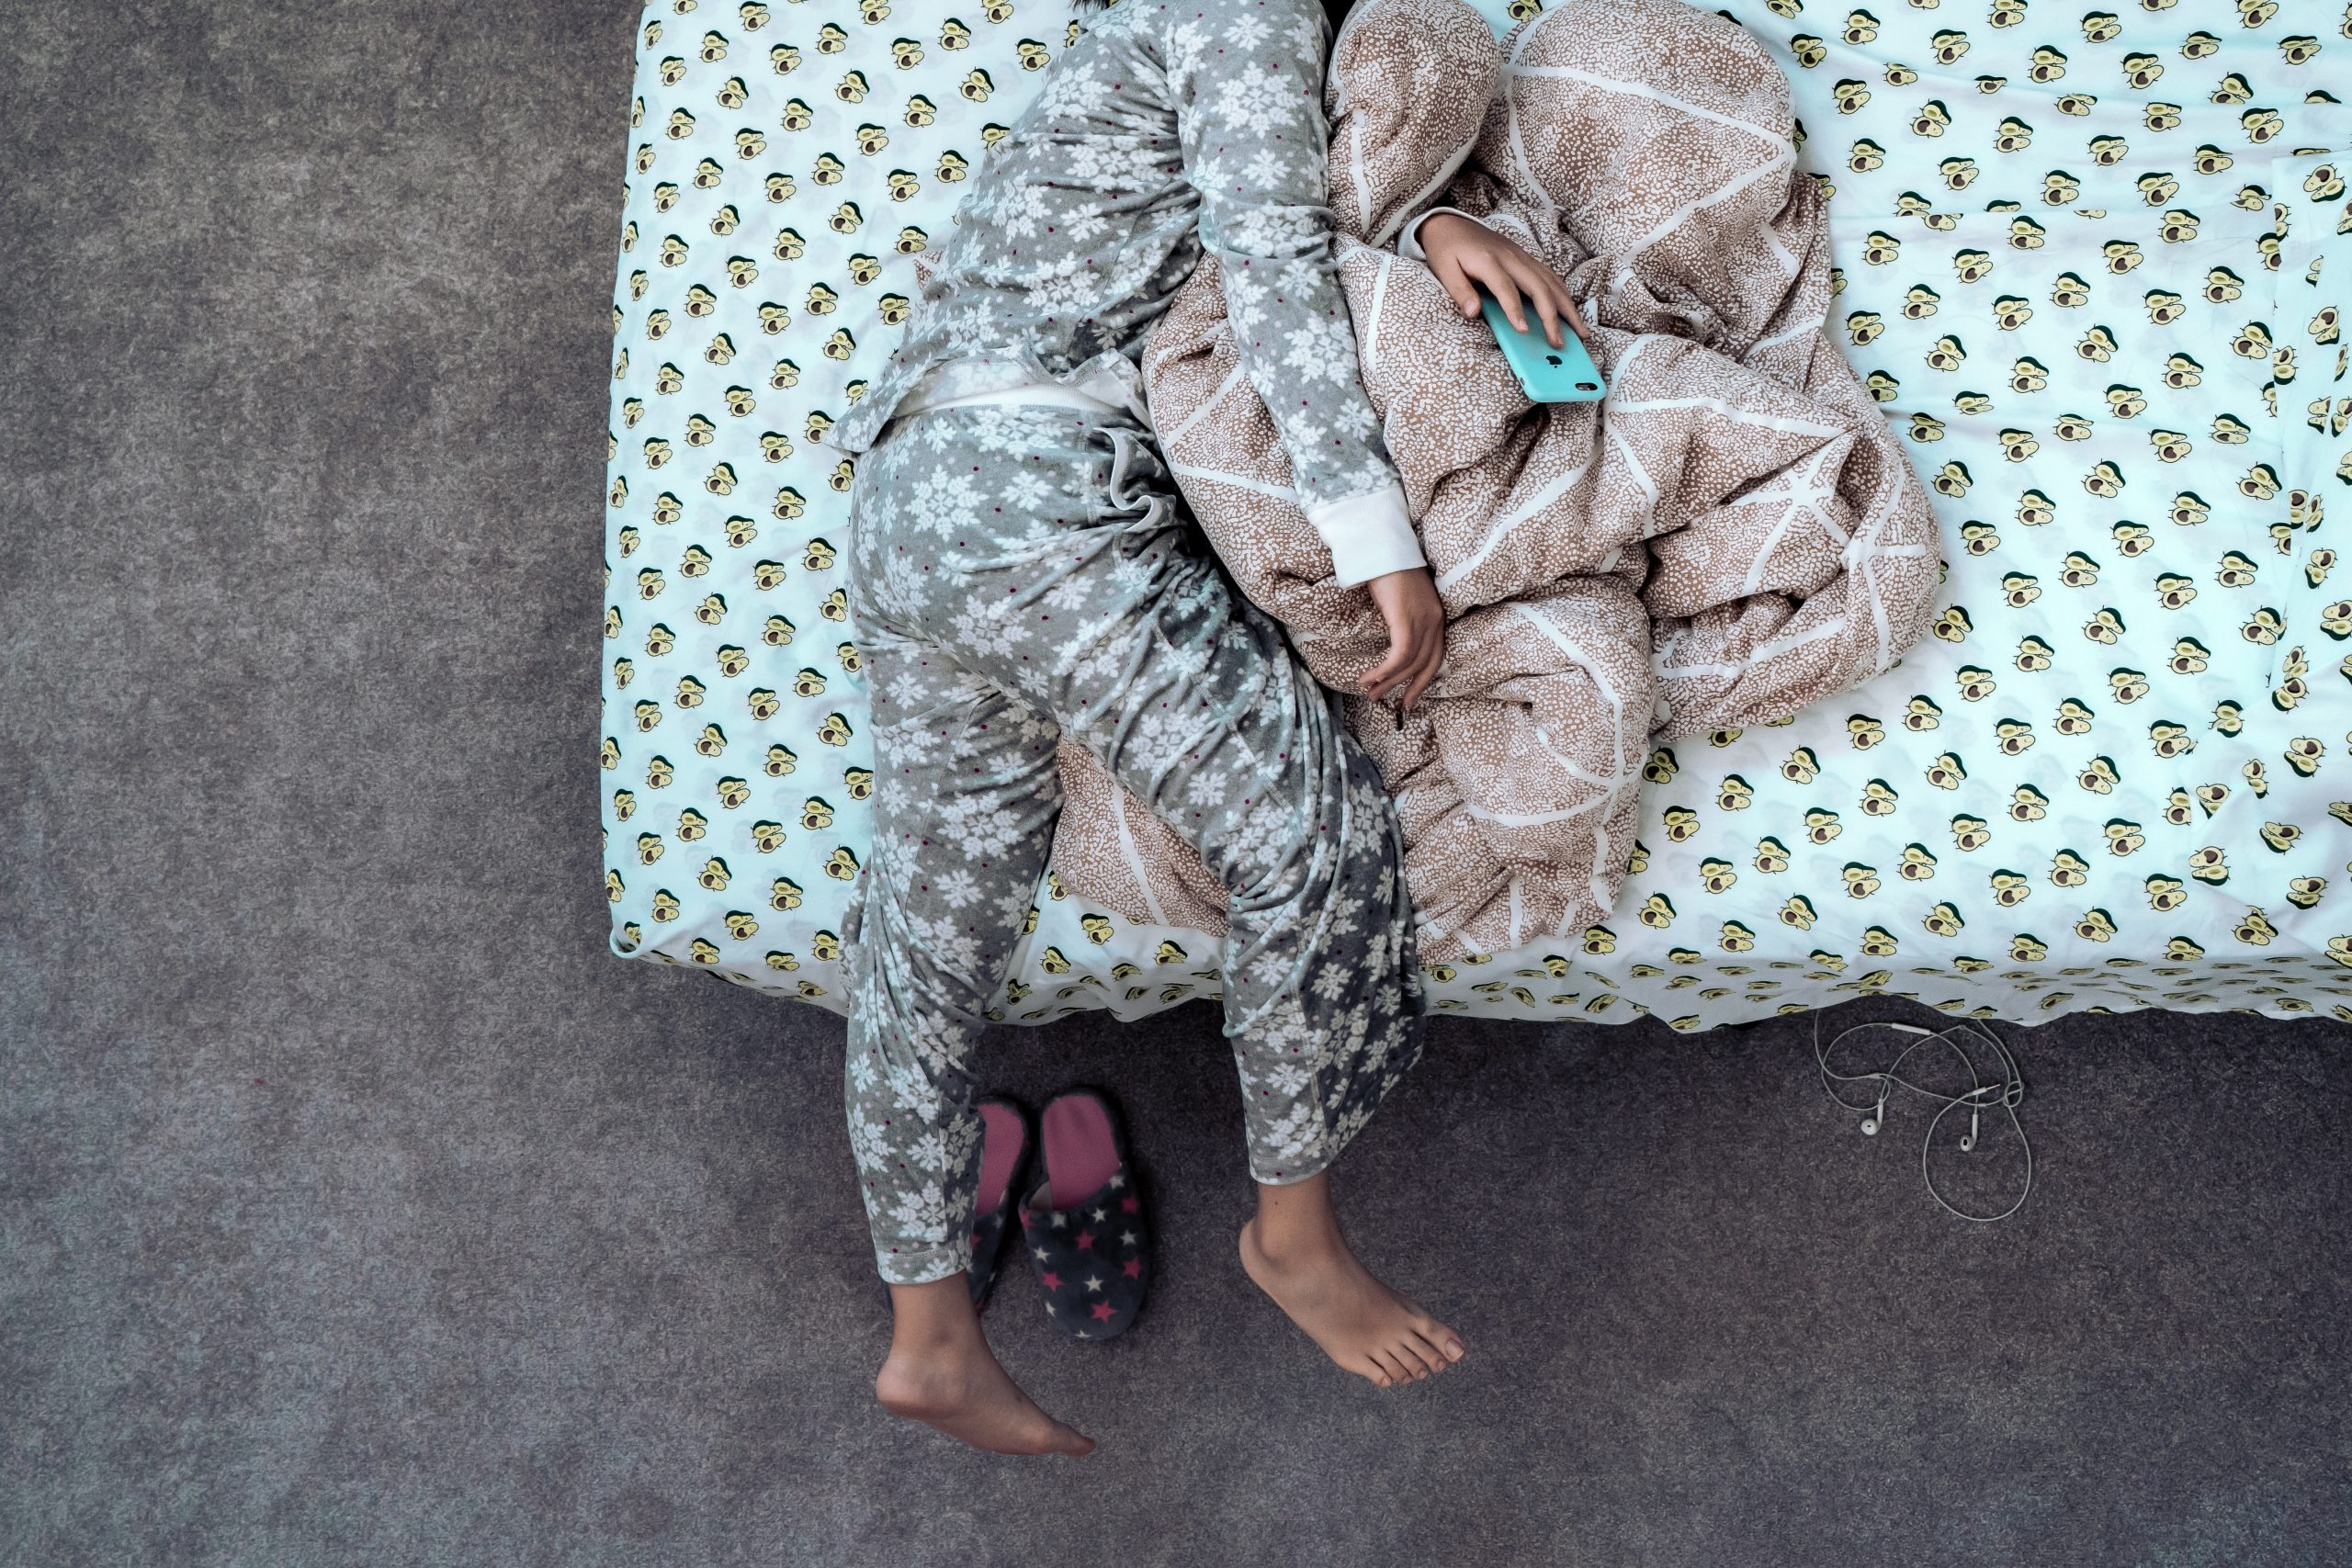 Woman in pyjamas on bed